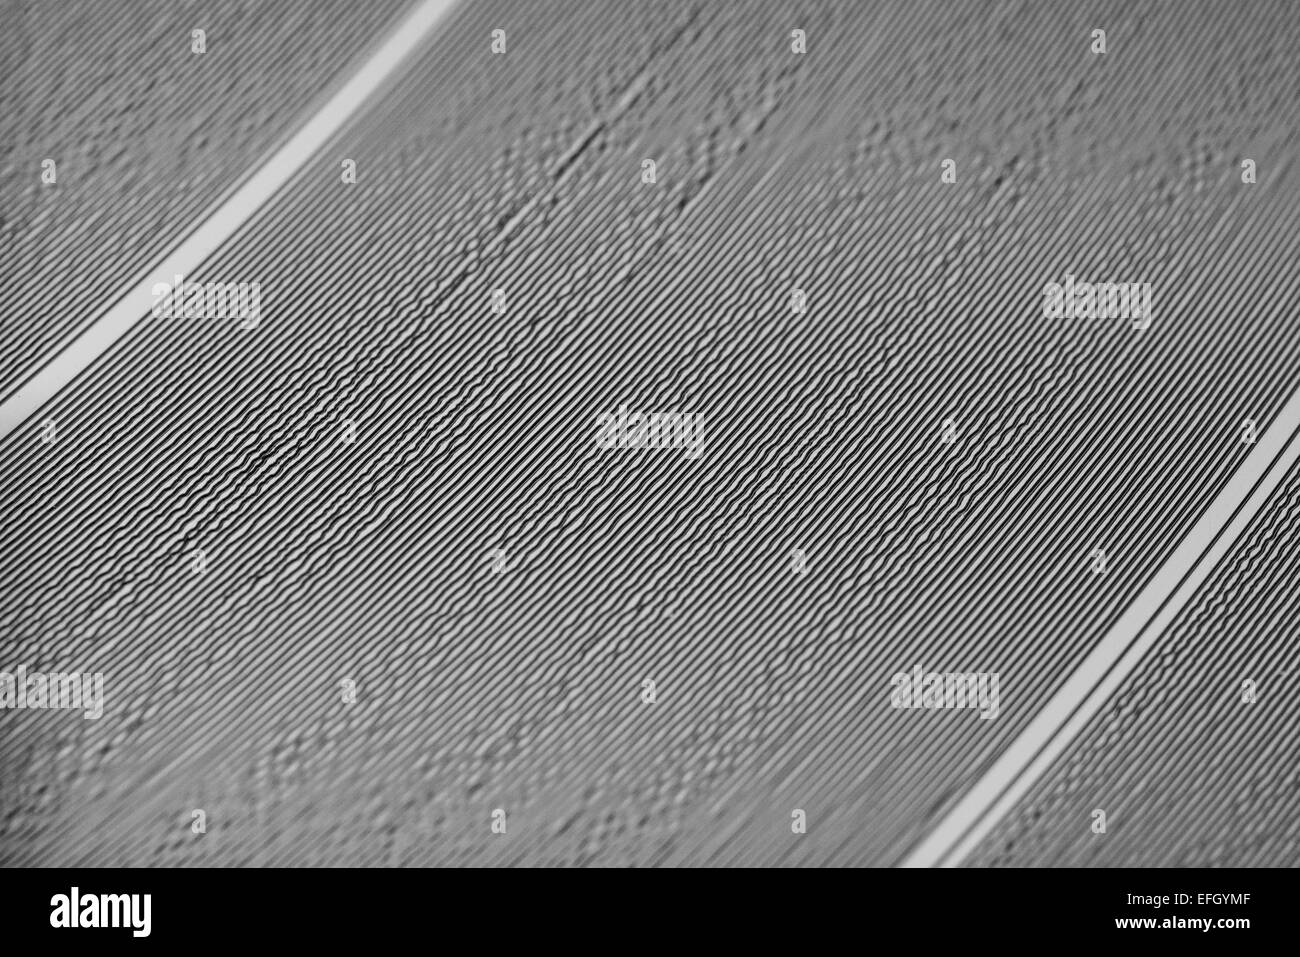 A close up of a vinyl record - Stock Image